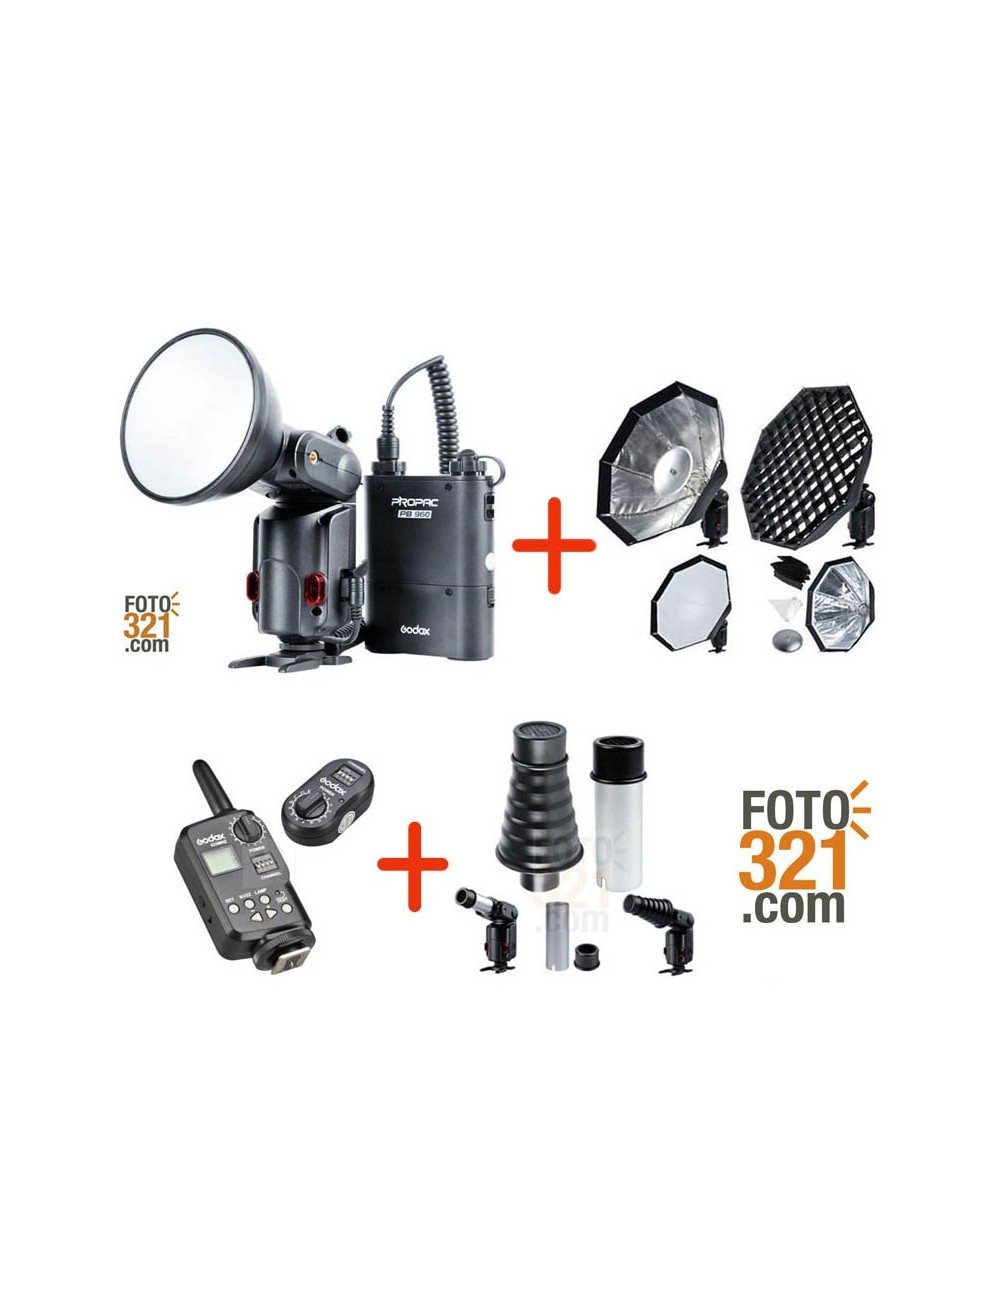 Pack Godox Witstro AD180 con softbox, snoot y triggers